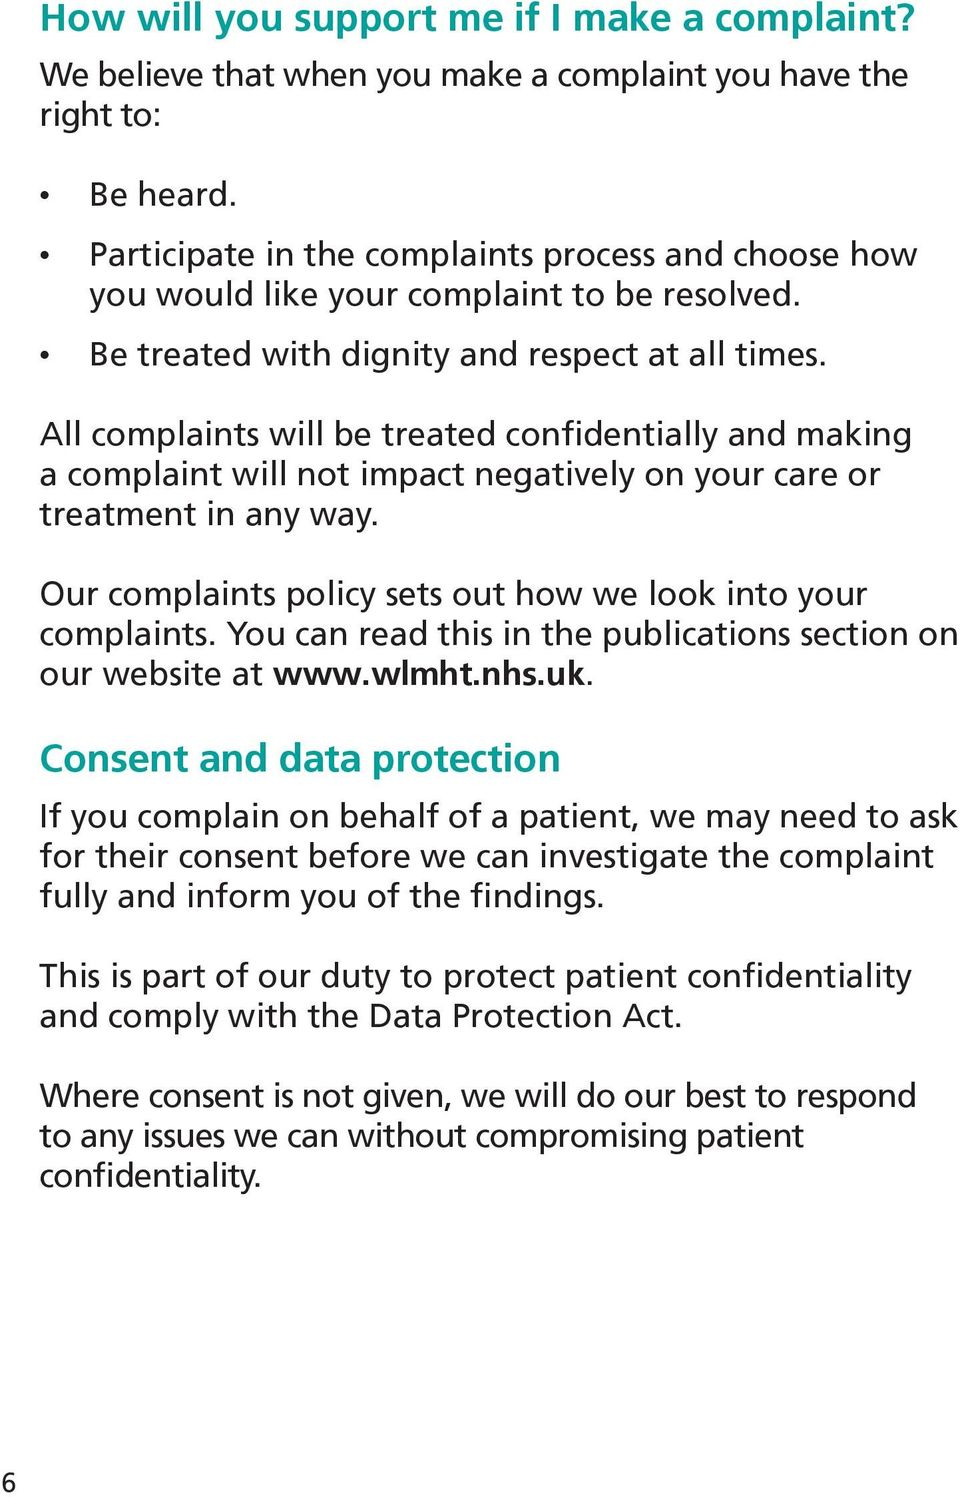 All complaints will be treated confidentially and making a complaint will not impact negatively on your care or treatment in any way. Our complaints policy sets out how we look into your complaints.